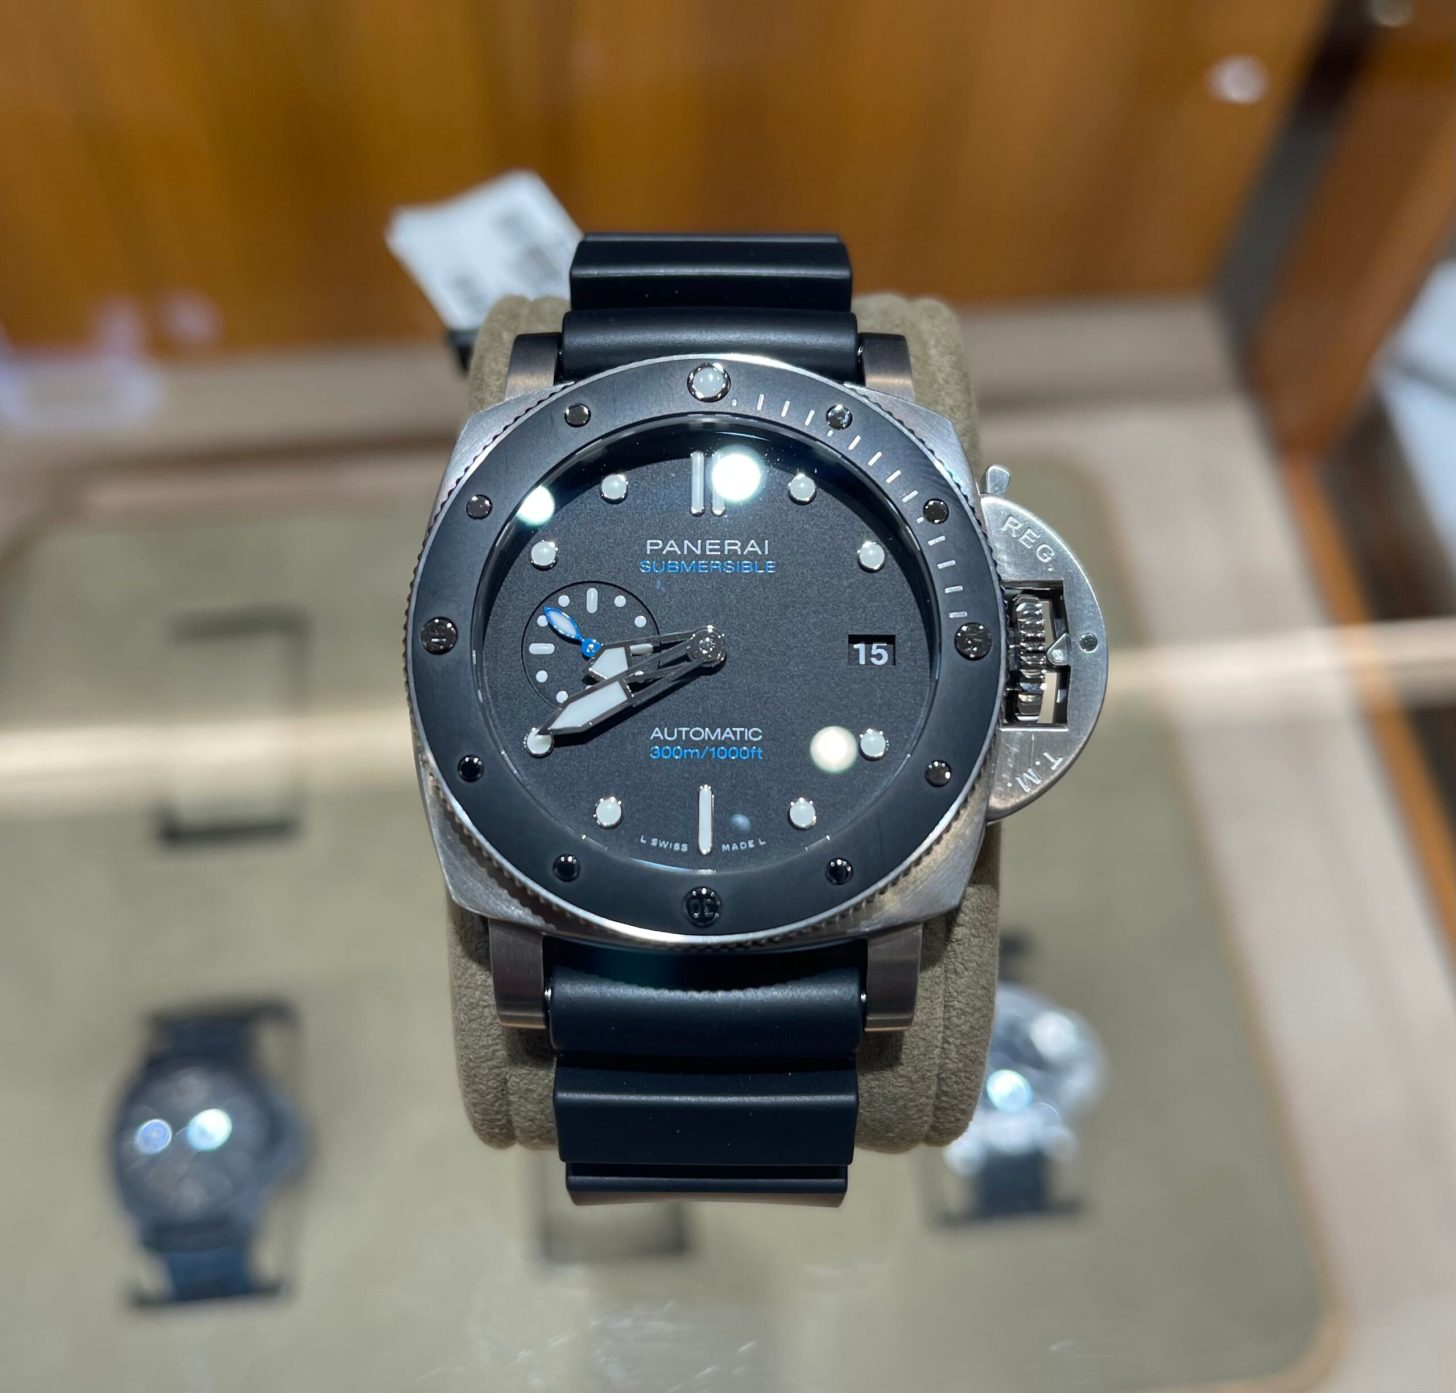 How I'd Invest $100,000 Today - A nice watch sounds good